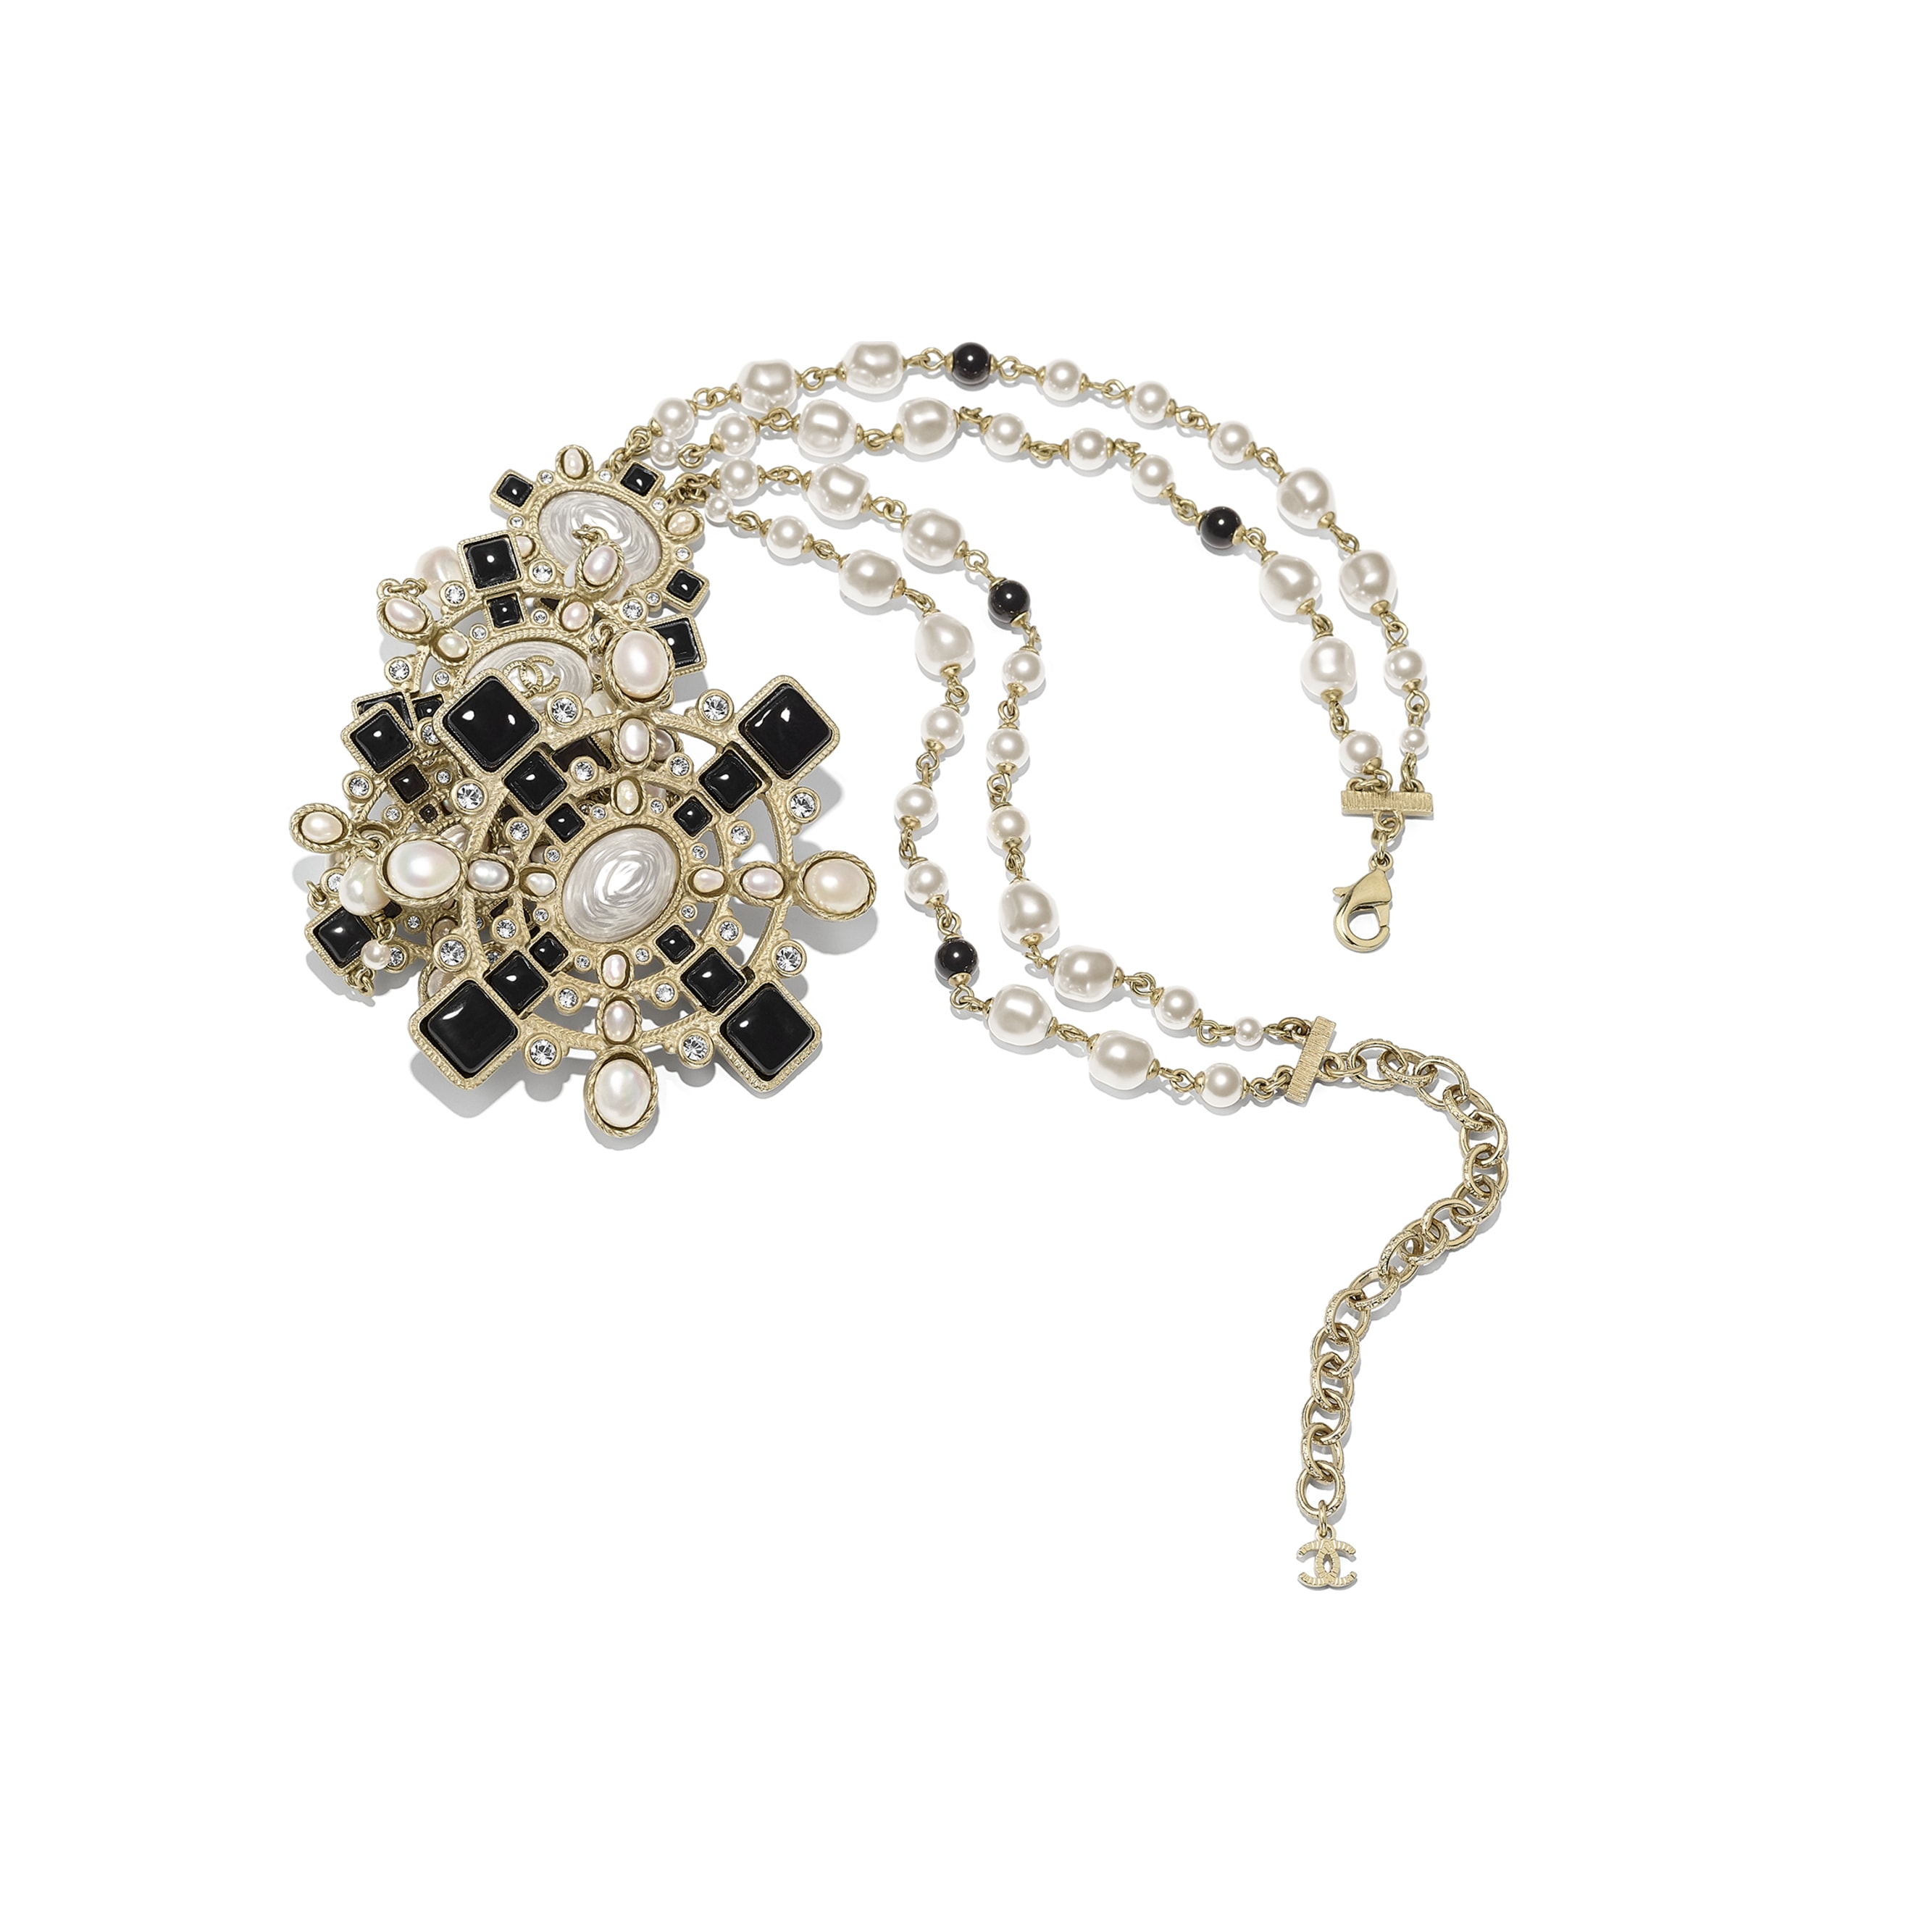 Necklace - Gold, Pearly White, Black & Crystal - Metal, Cultured Fresh Water Pearls, Glass Pearls, Diamanté & Resin - Alternative view - see standard sized version